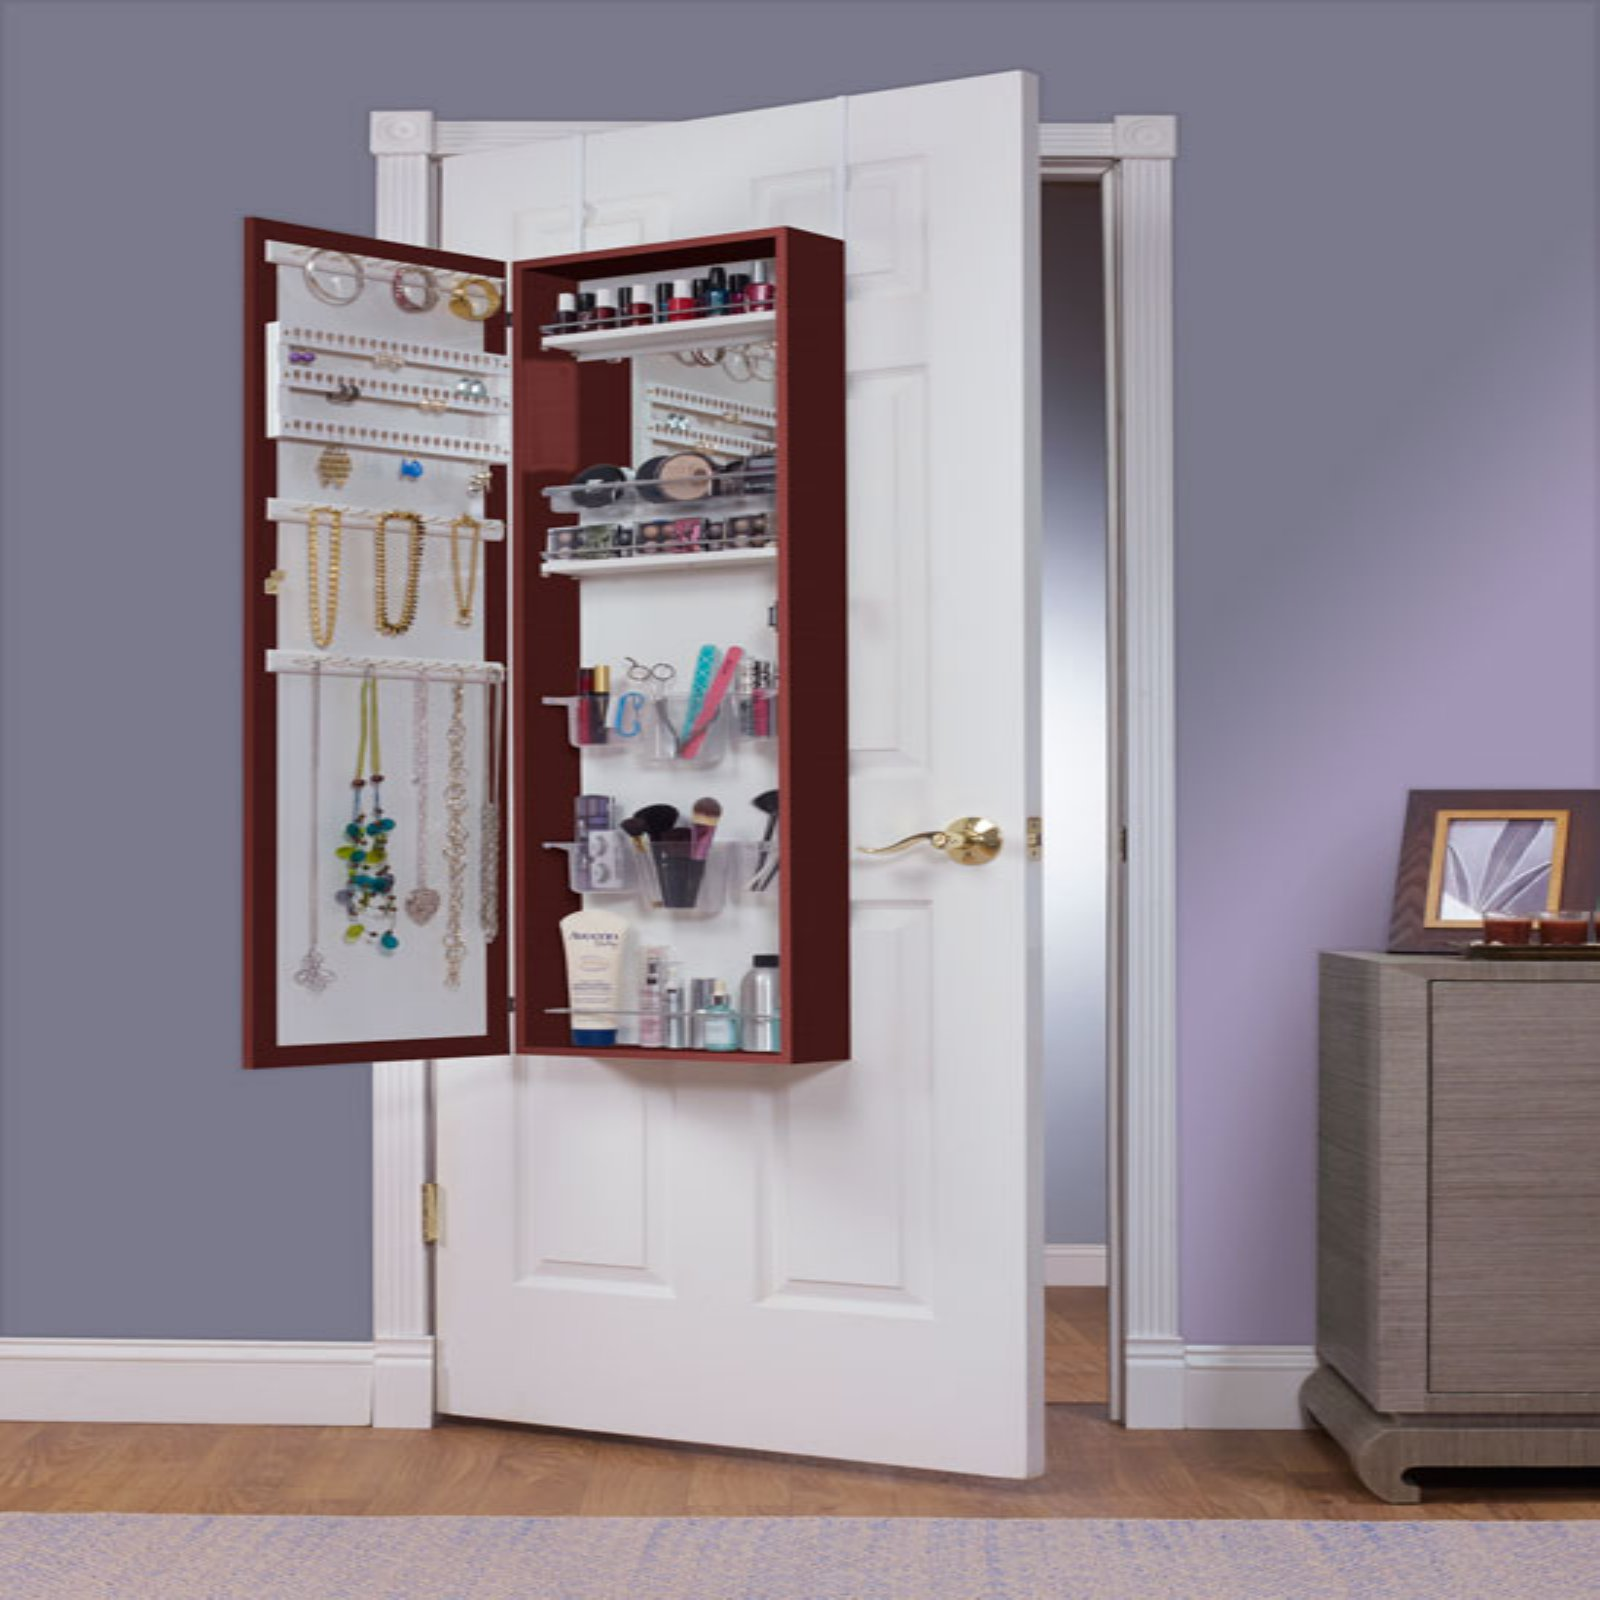 Mirrotek Combination and Makeup Storage Wall Mounted or Over the Door Jewelry Armoire